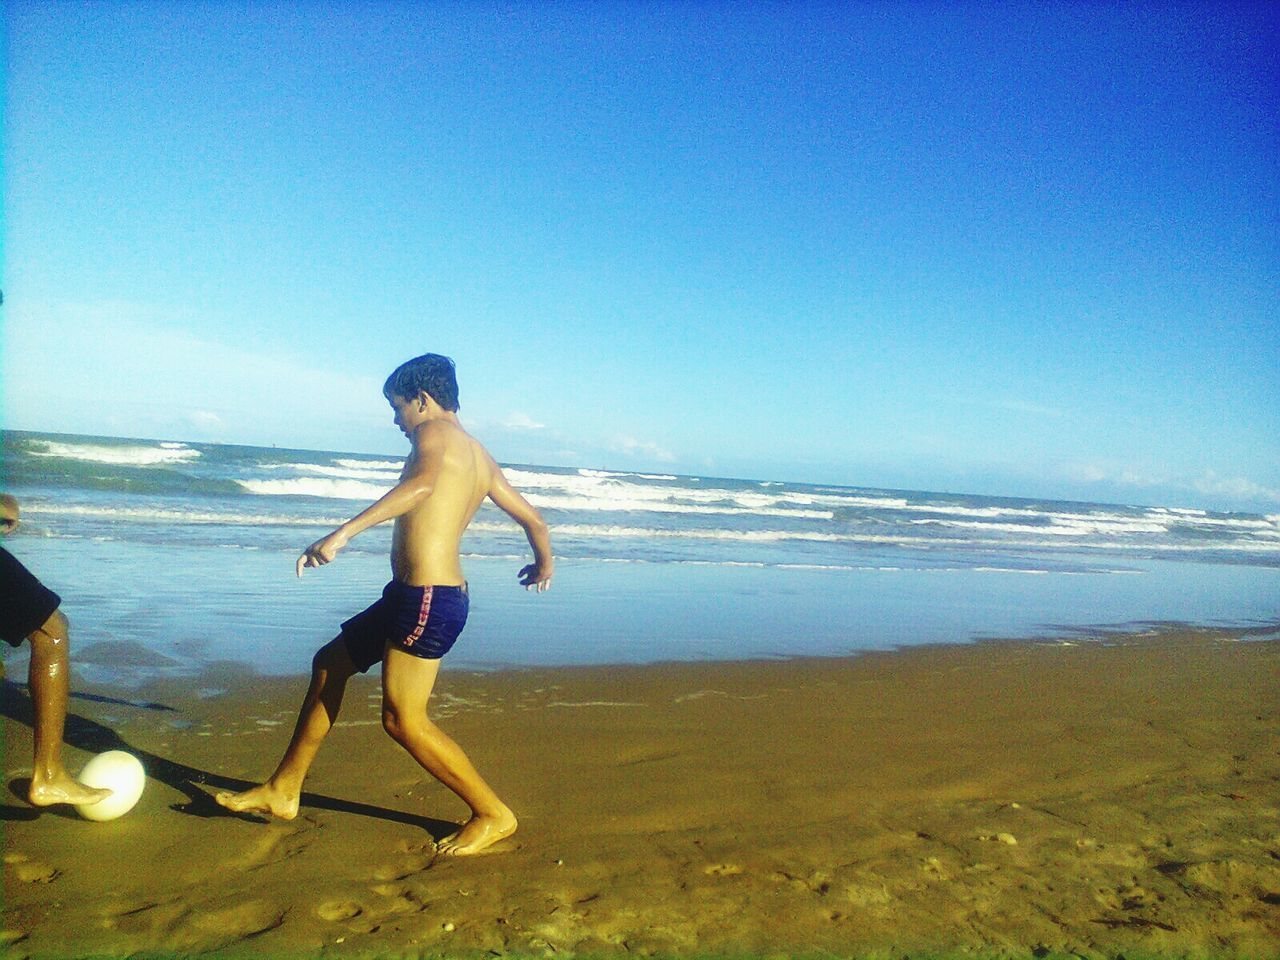 sea, shirtless, full length, beach, nature, water, real people, leisure activity, childhood, one person, sky, vacations, clear sky, scenics, blue, outdoors, beauty in nature, lifestyles, sand, boys, horizon over water, day, young adult, people